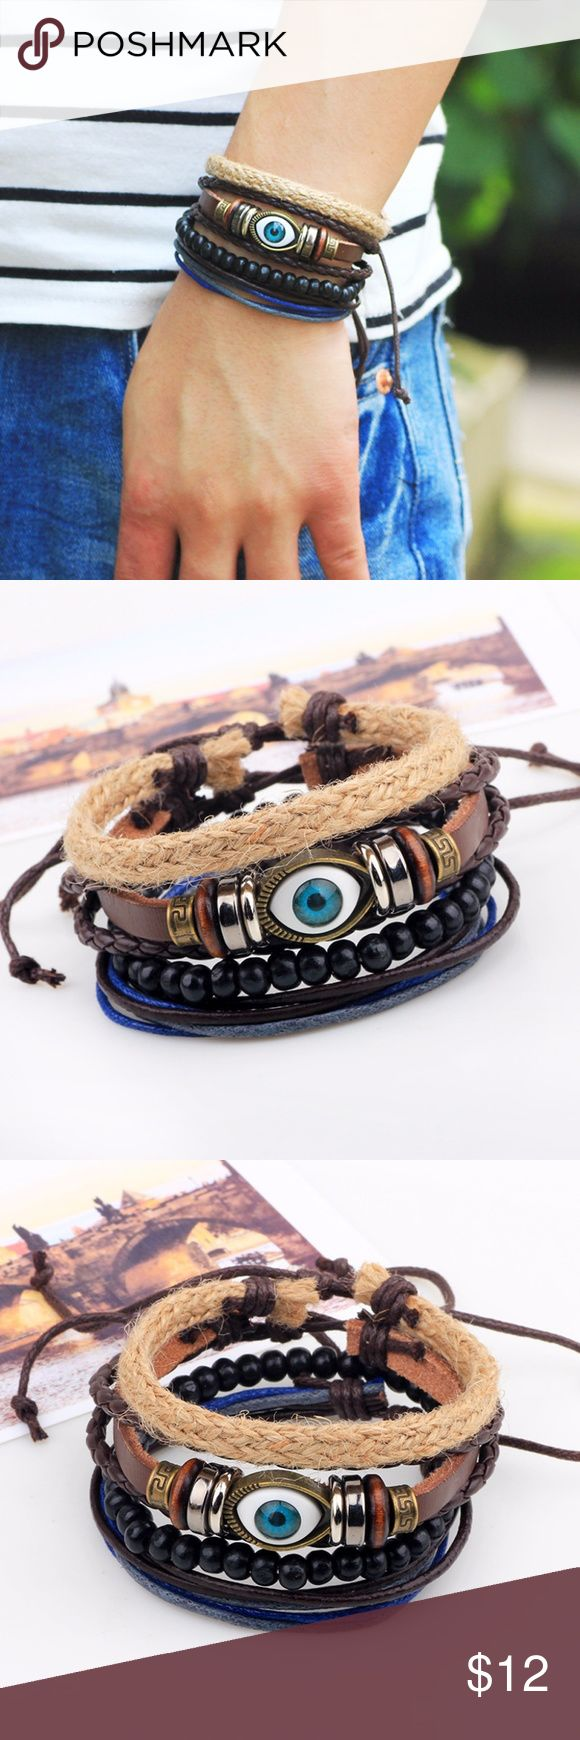 Fashion Jewelry Bracelets Evil Eye Assorted Leather Bracelet Braid Hemp Cord  Feature: fashion, vintage, handmade  Material: leather, coconut beads, hemp cord, braid belt  Specifications: 6cm in diameter, 18-20cm in length,?adjustable  Weight: 20g  Makes a great gift for friend and family or self purchase  Birthday gift, Christmas gift, Valentine's gift and etc Jewelry Bracelets